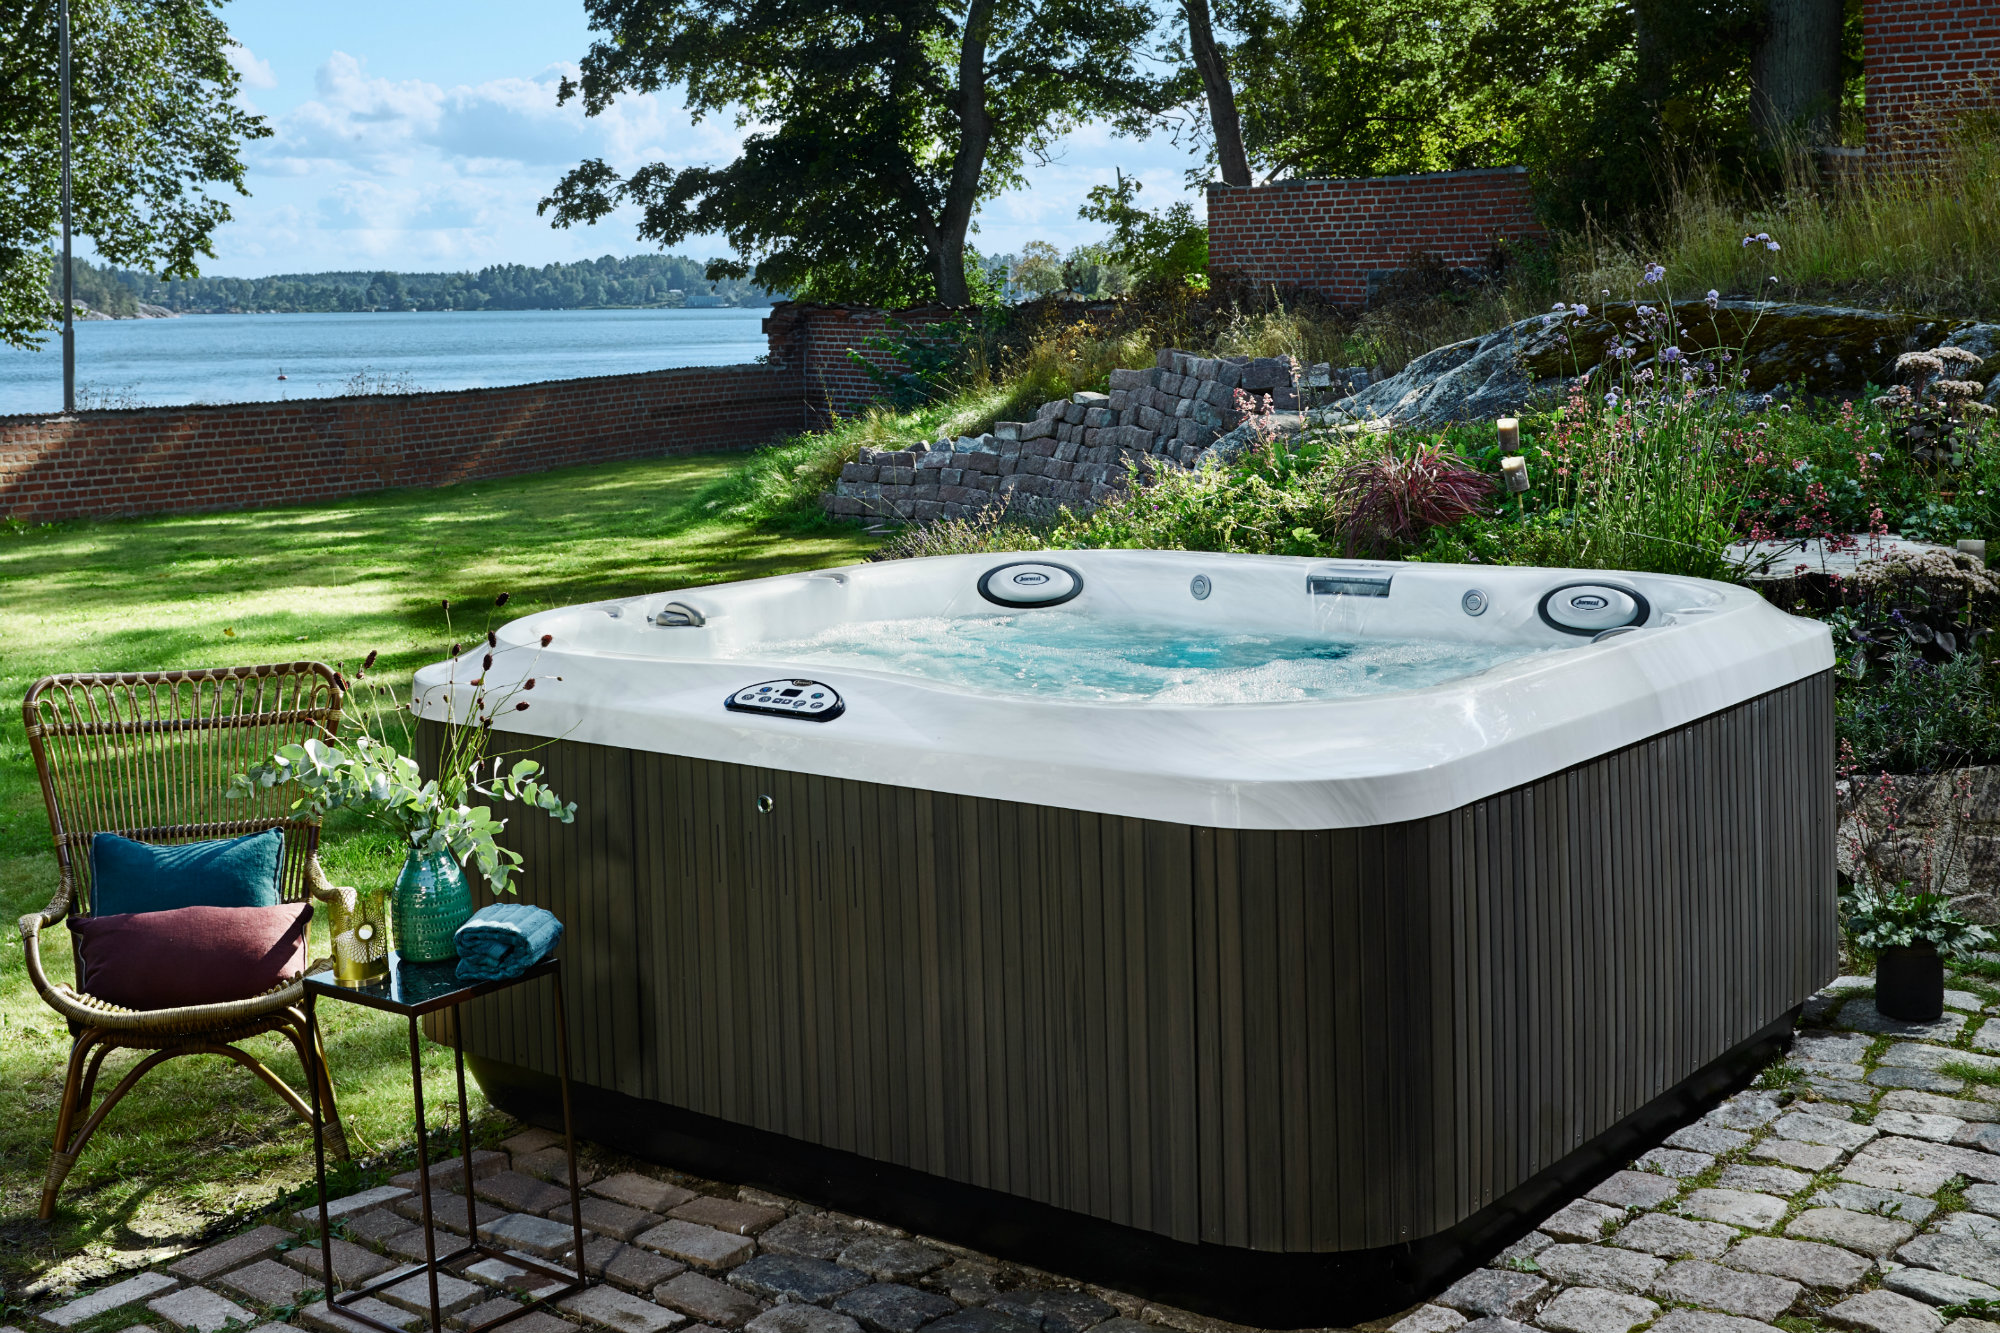 Jacuzzi Pool Hot Tub State Of The Market Portable Spas Pool And Spa News Spas